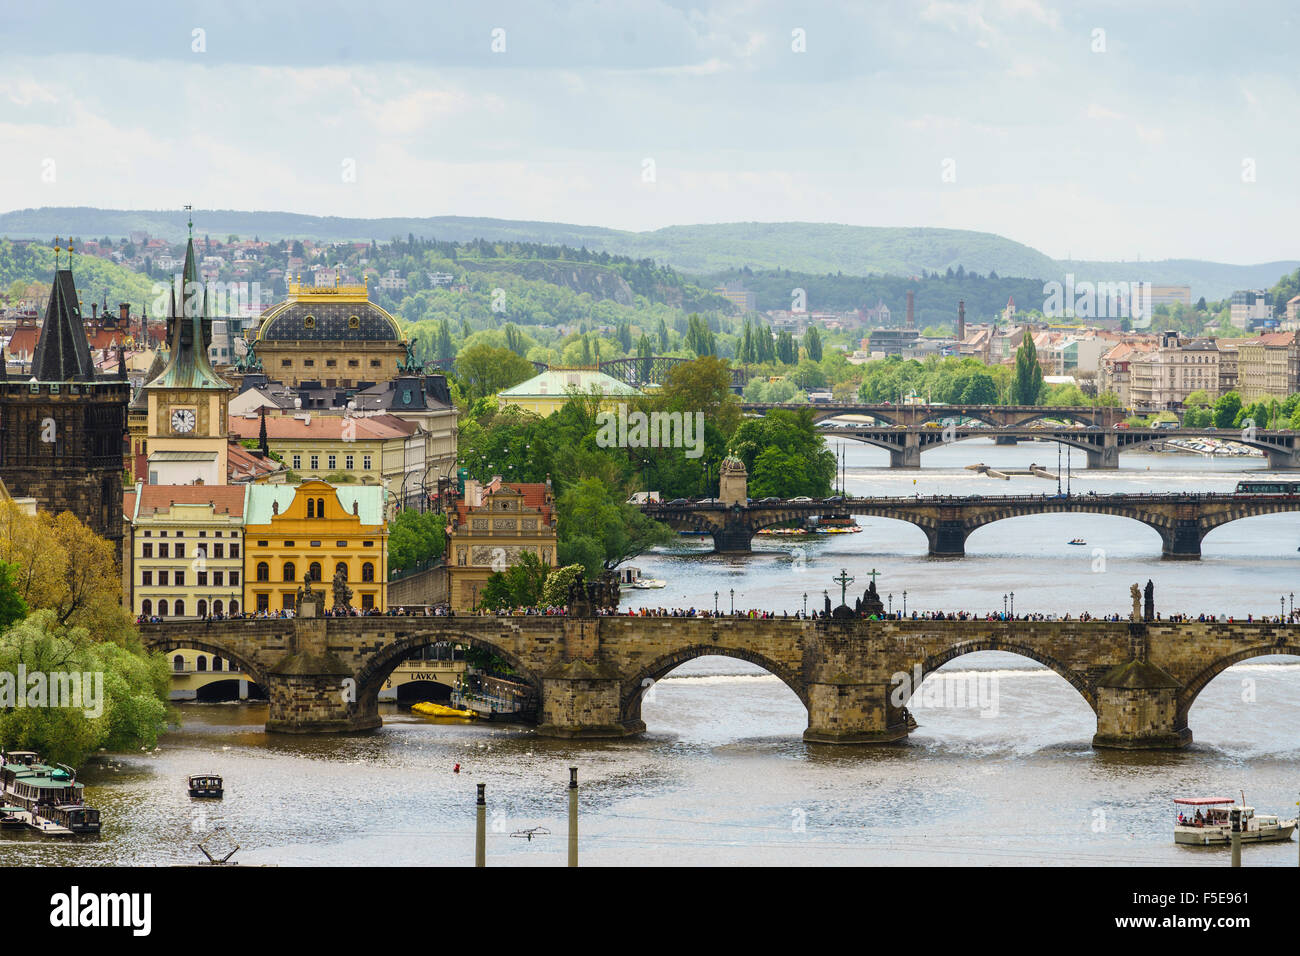 Prague cityscape its bridges connecting the Old Town to Mala Strana, Prague Castle and Hradcany, Prague, Czech Republic - Stock Image